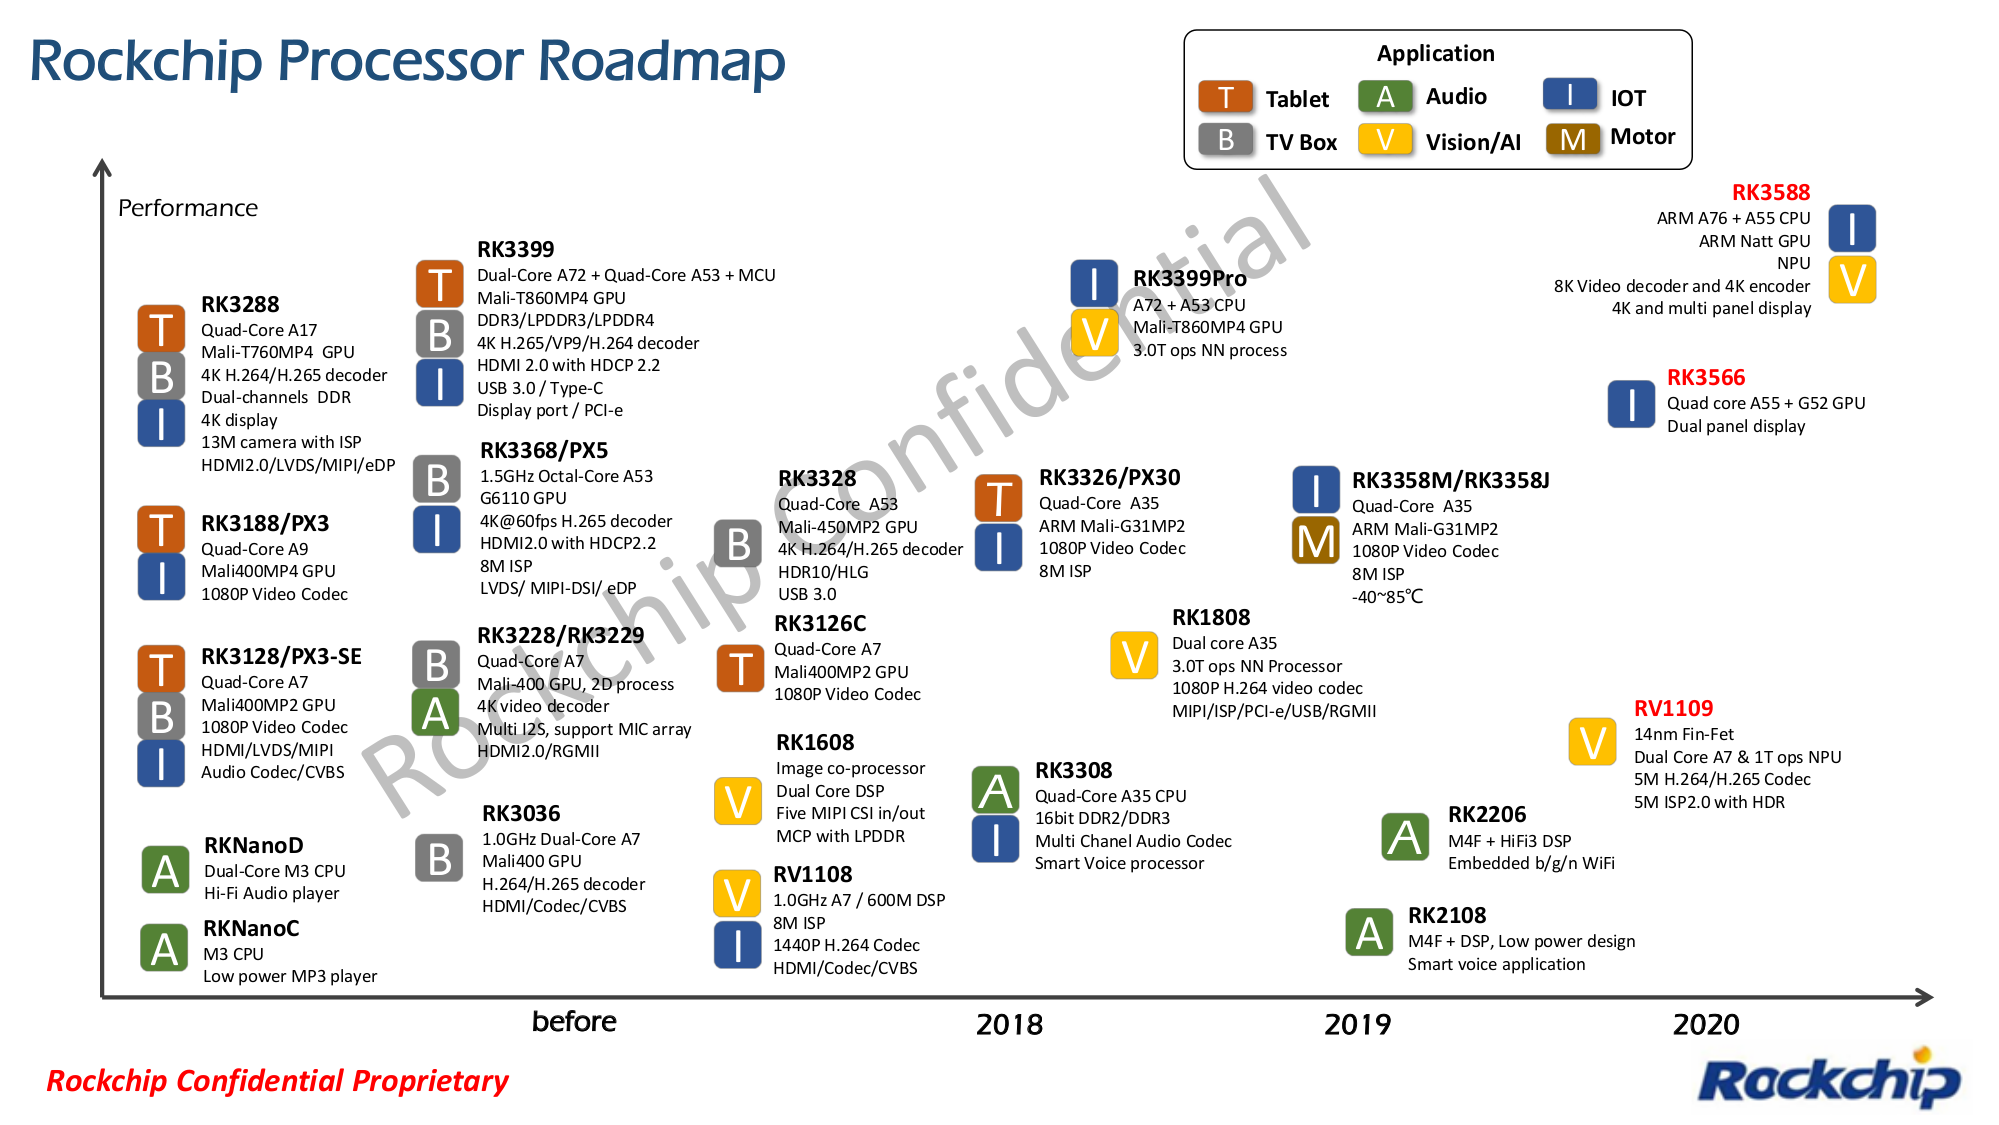 Rockchip Processor Roadmap 2020